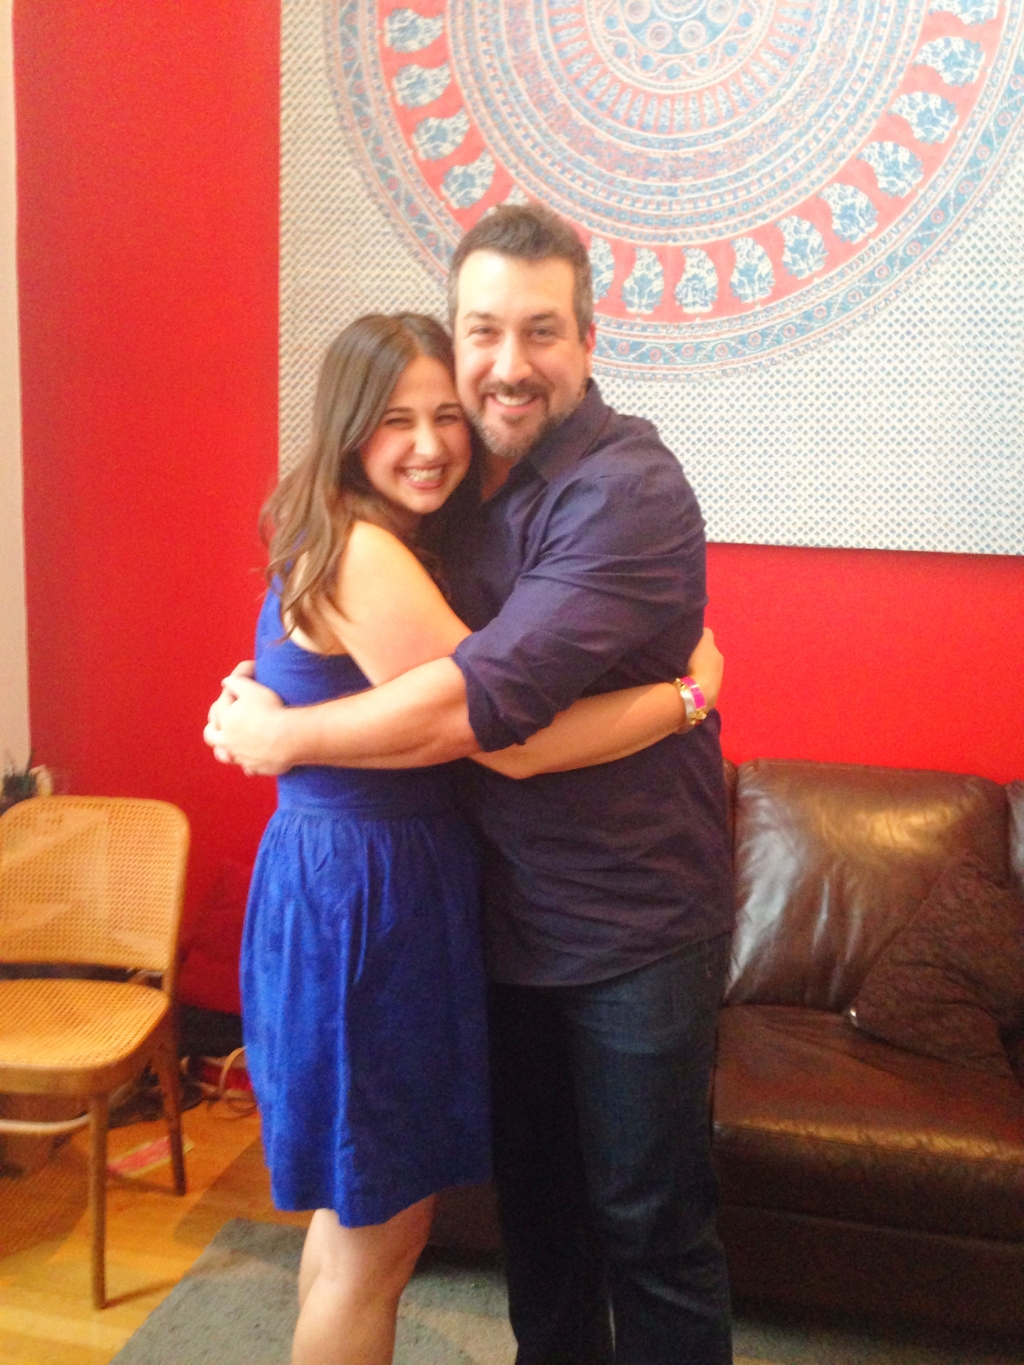 Cupcakes for Breakfast: My Family Recipe Rocks with Joey Fatone NSYNC